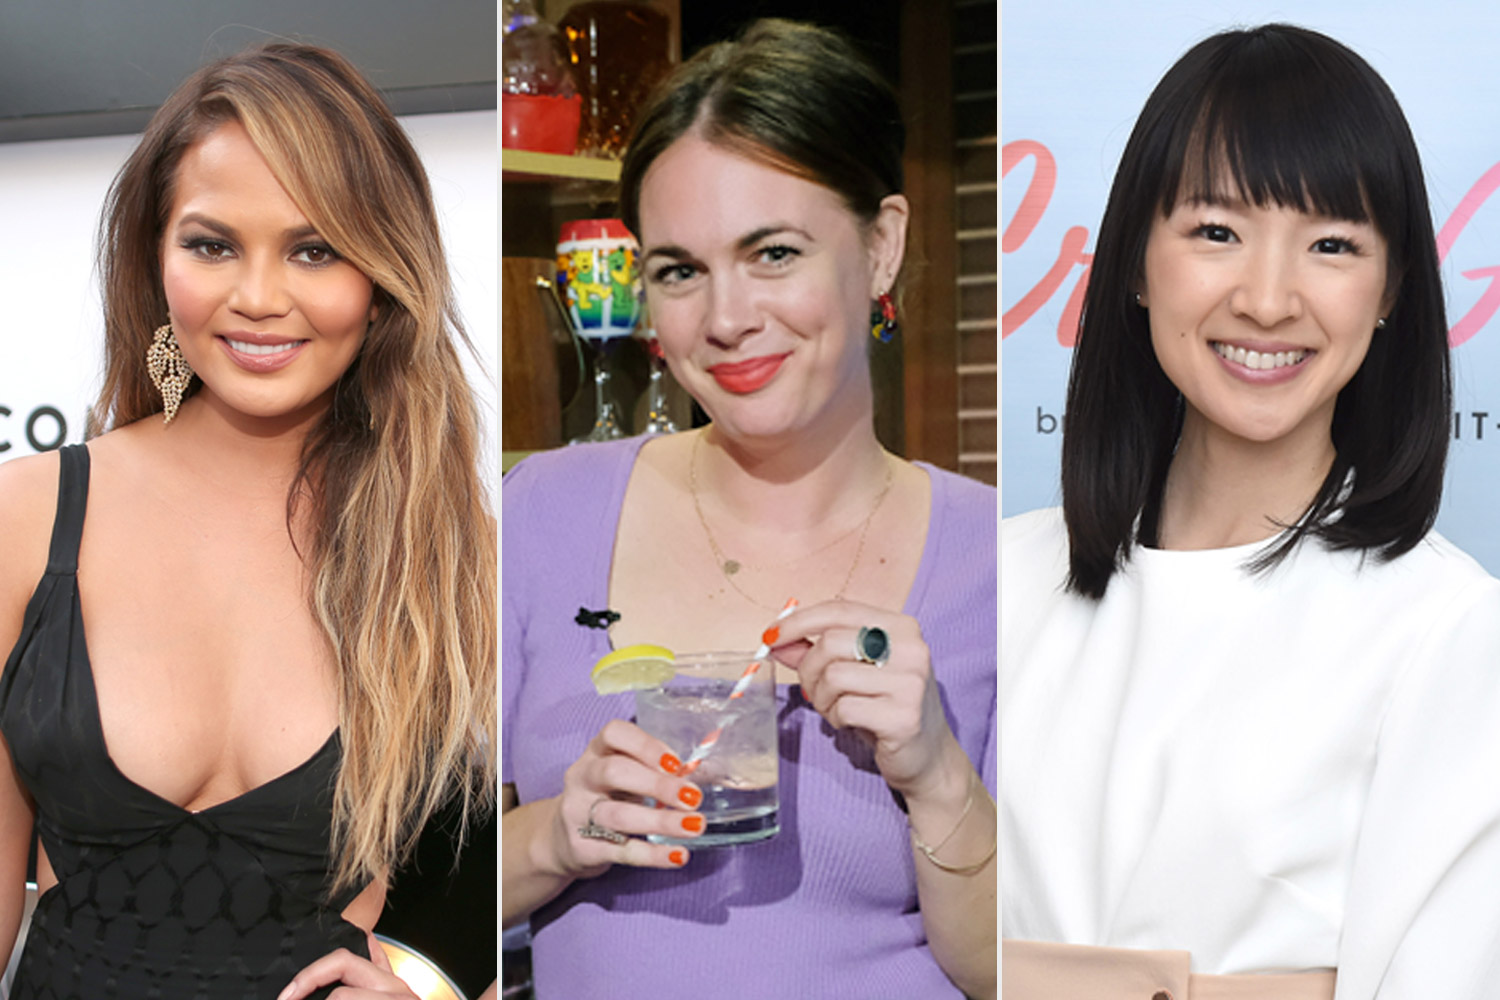 Chrissy Teigen, Alison Roman, and Marie Kondo